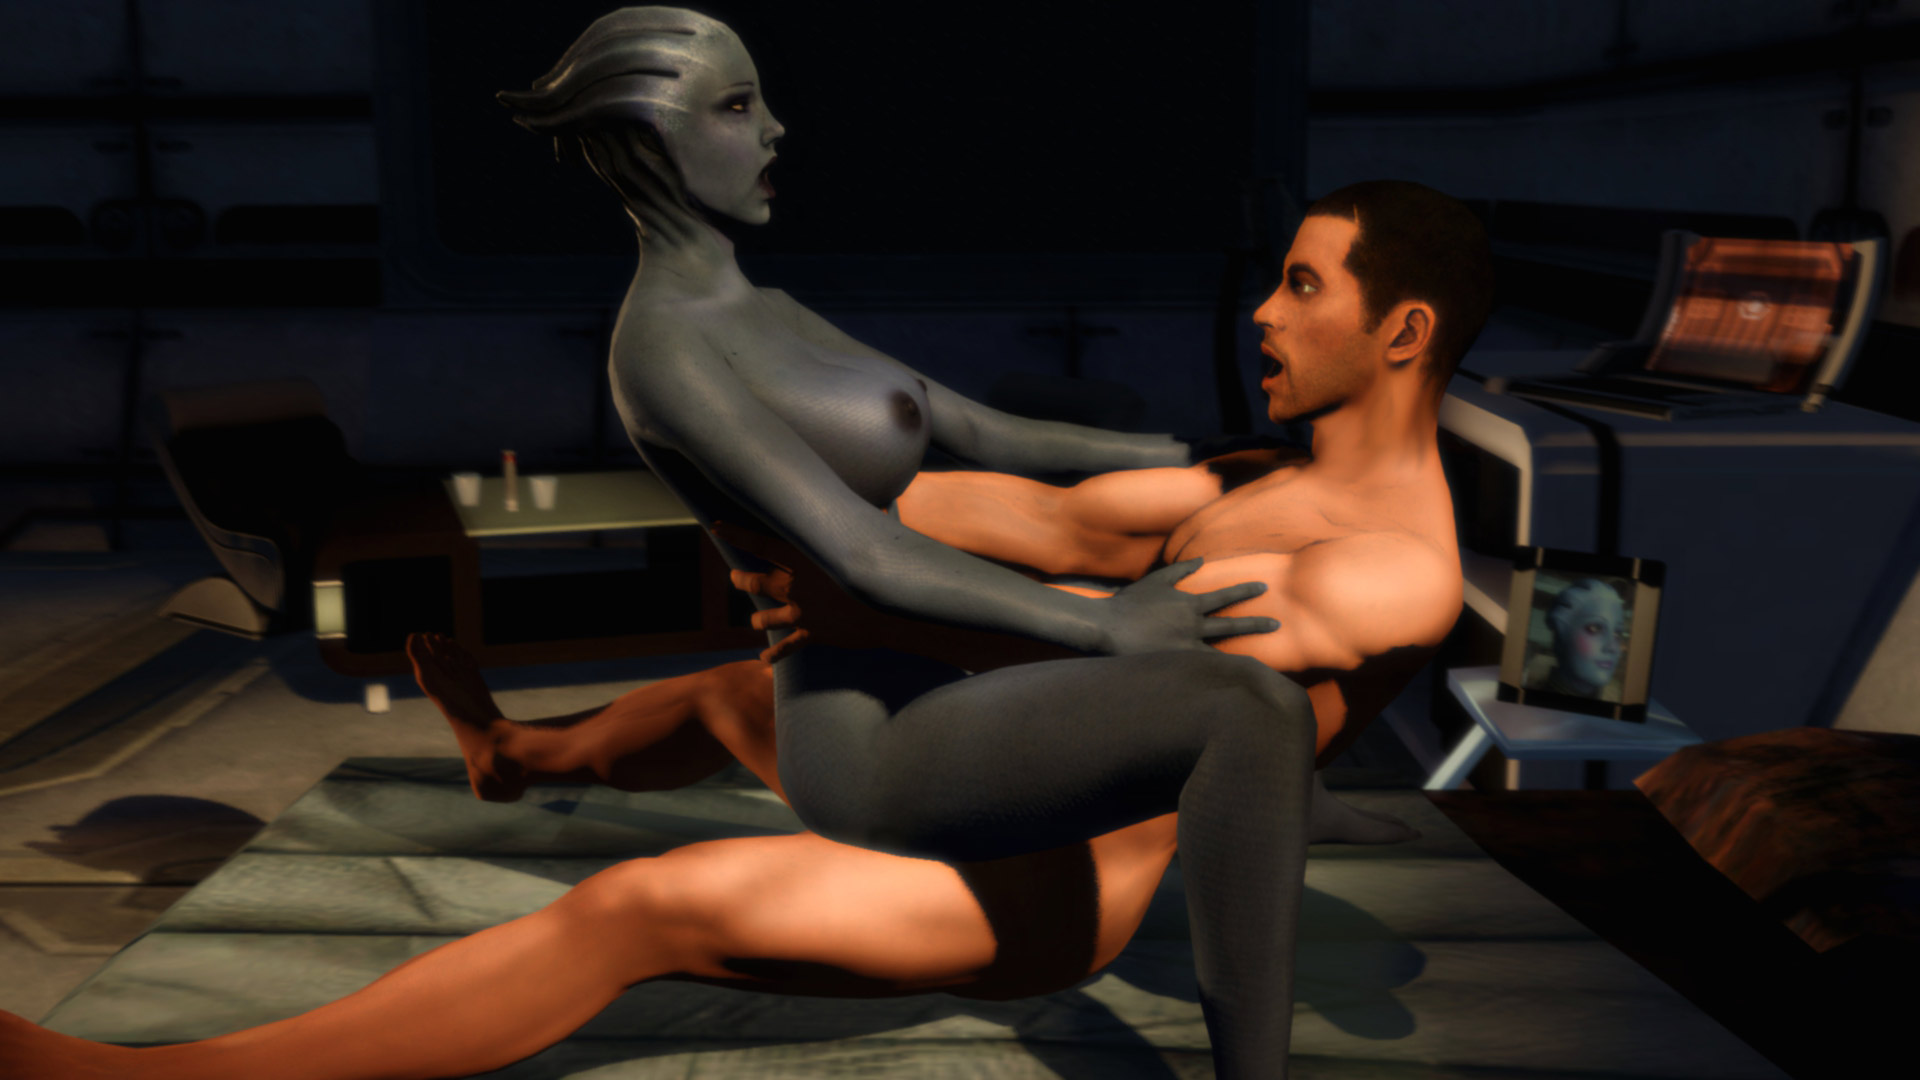 Mass effect gay alien 3d porn adult videos